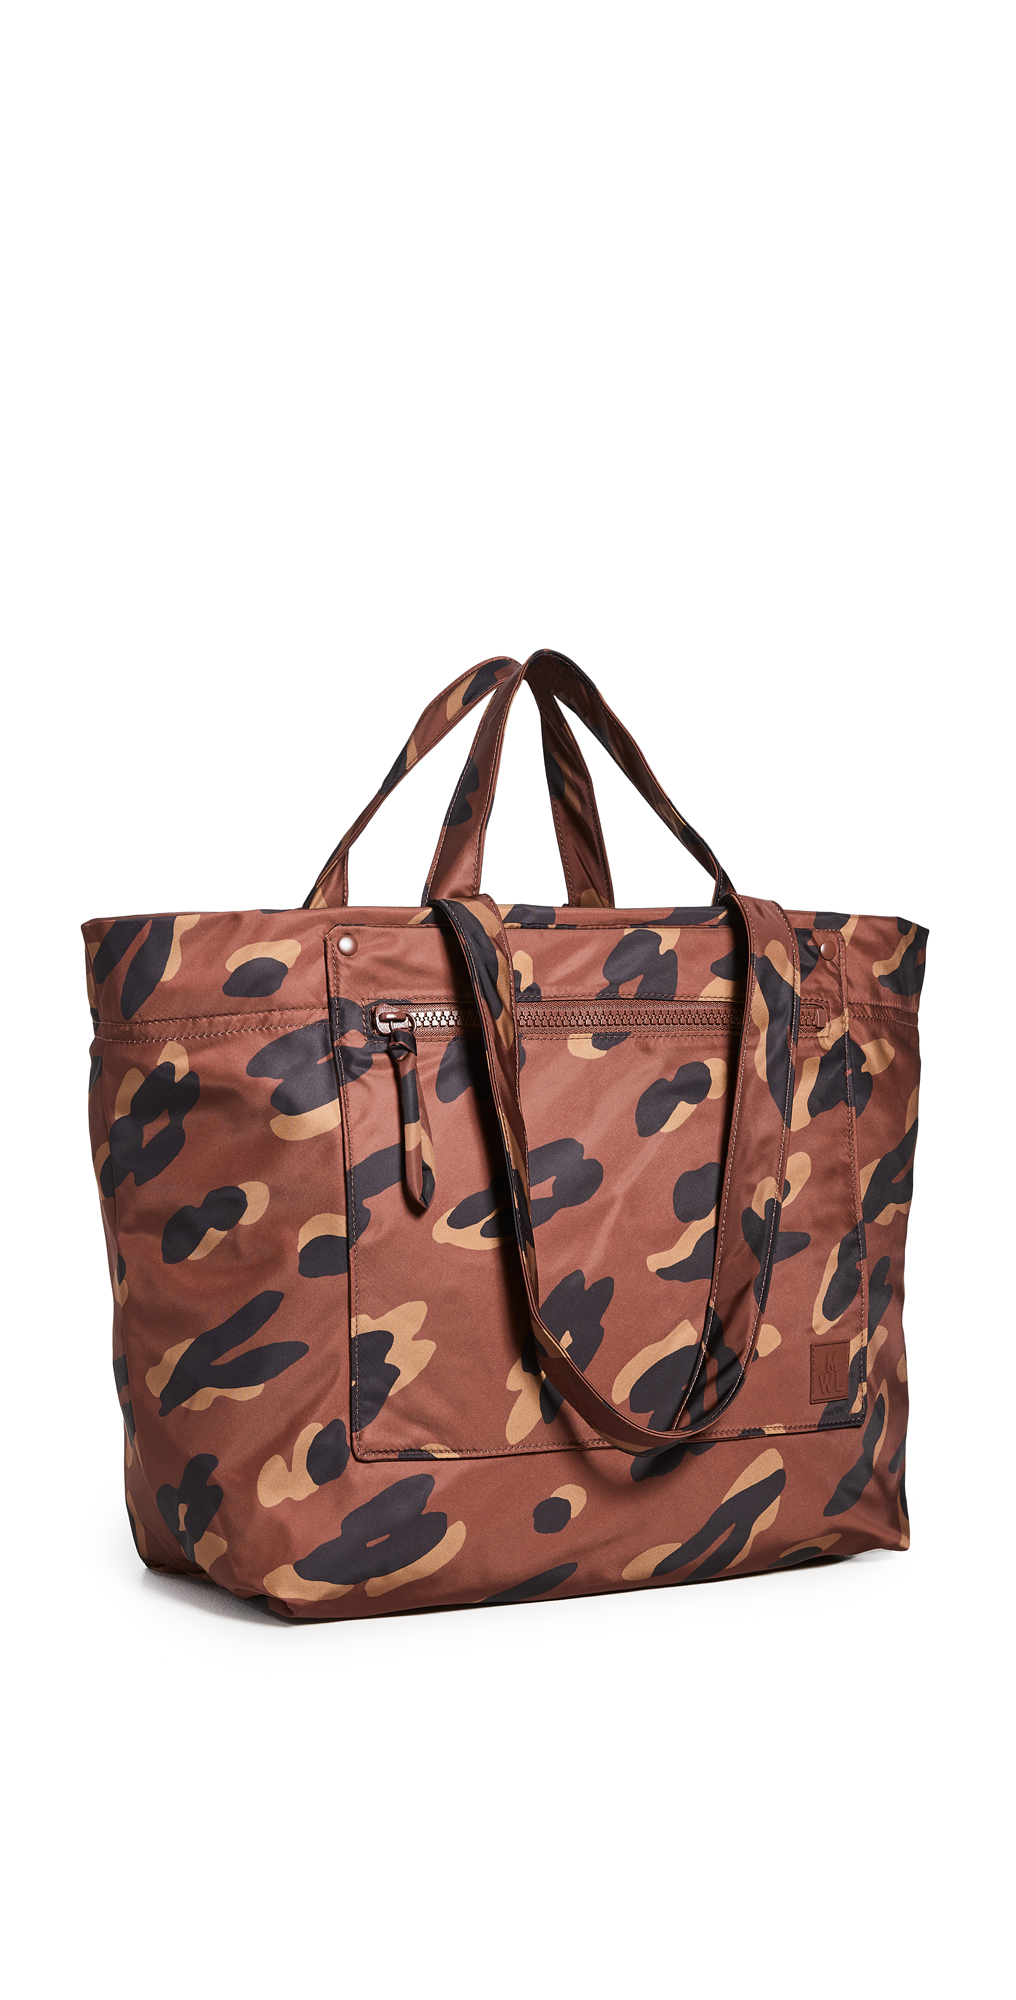 Madewell Travel Nylon Printed Tote